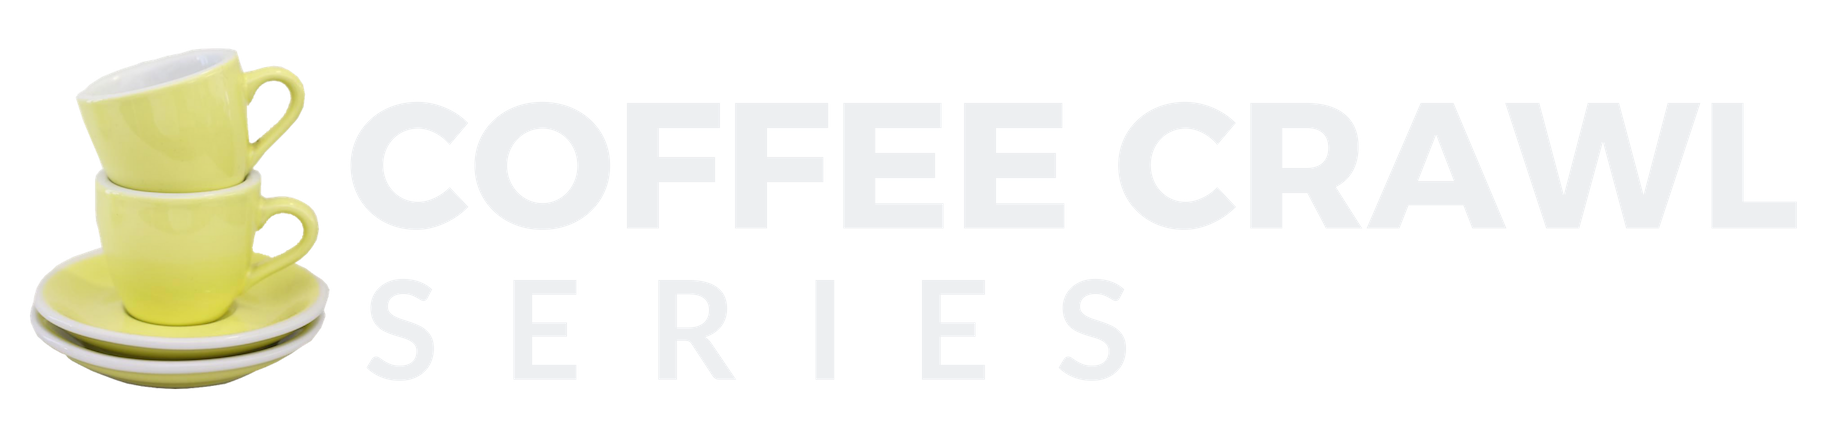 Coffee Crawl Series